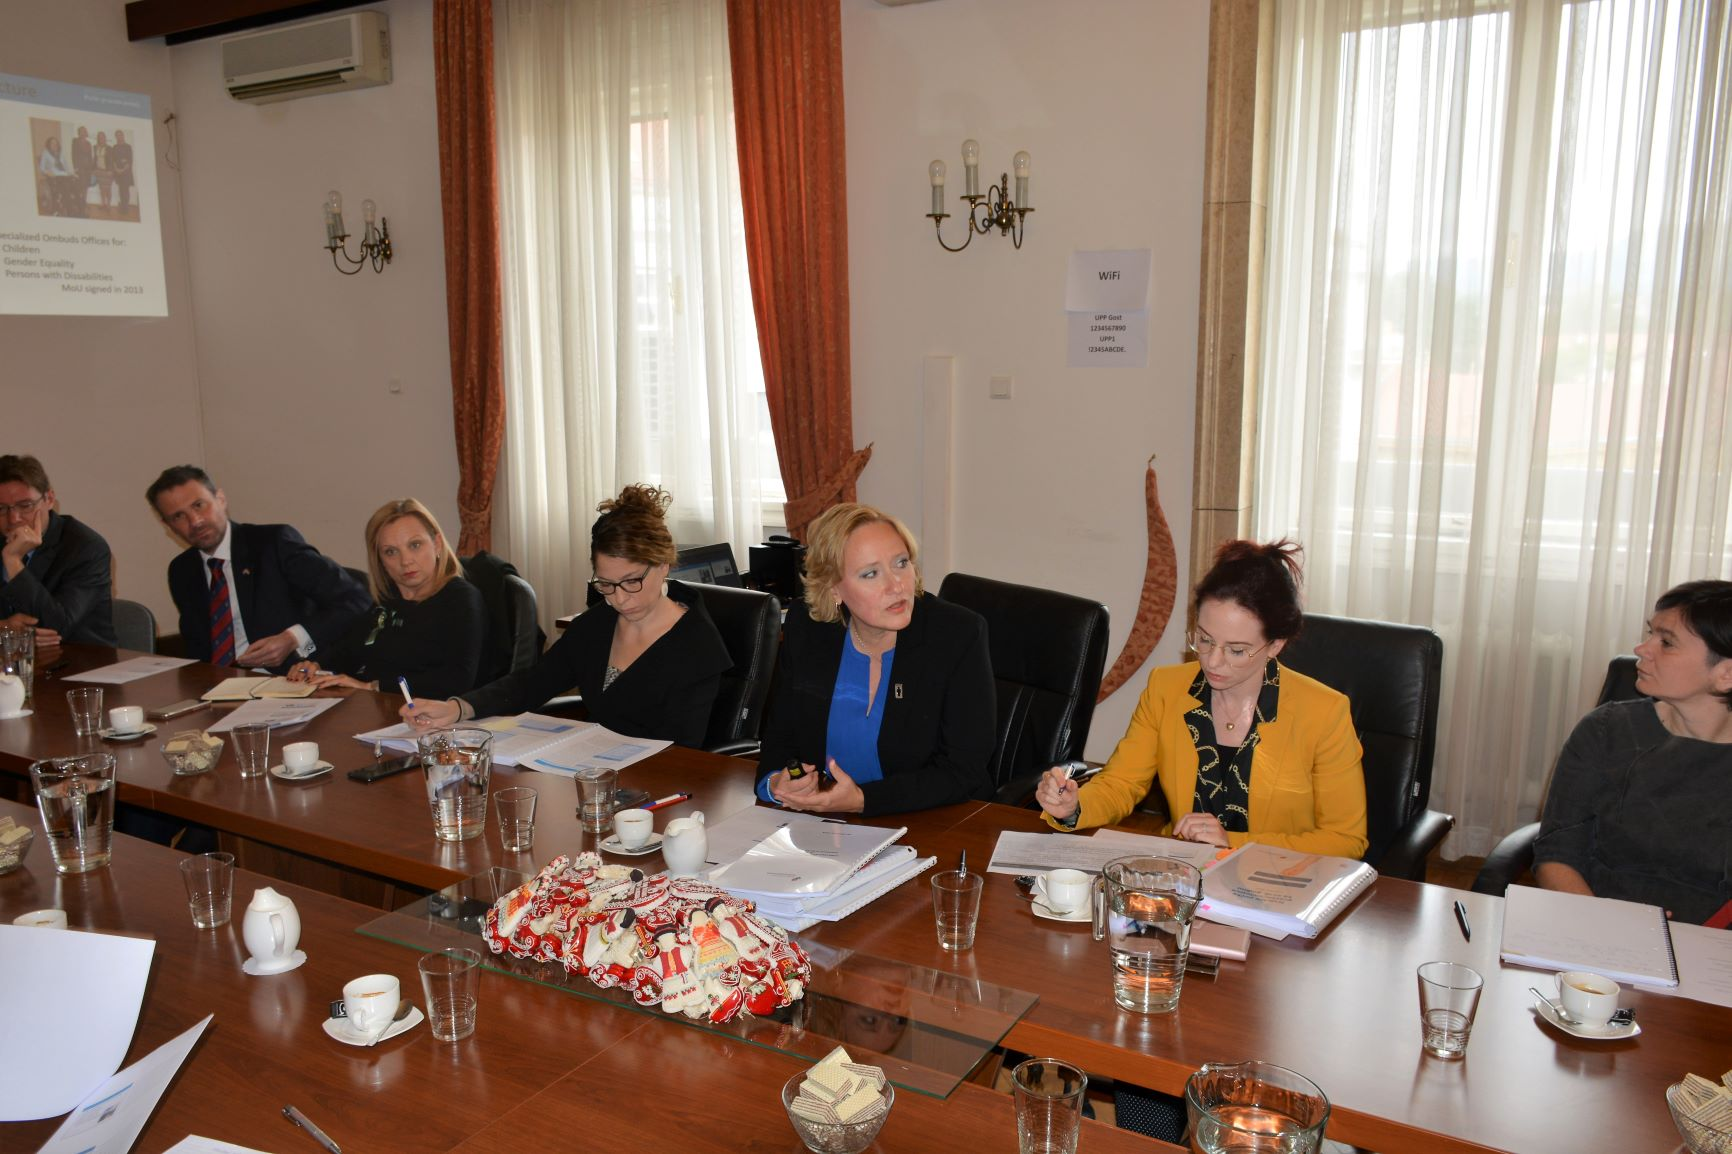 2018 Ombudswoman's Annual Report Presented to Diplomats